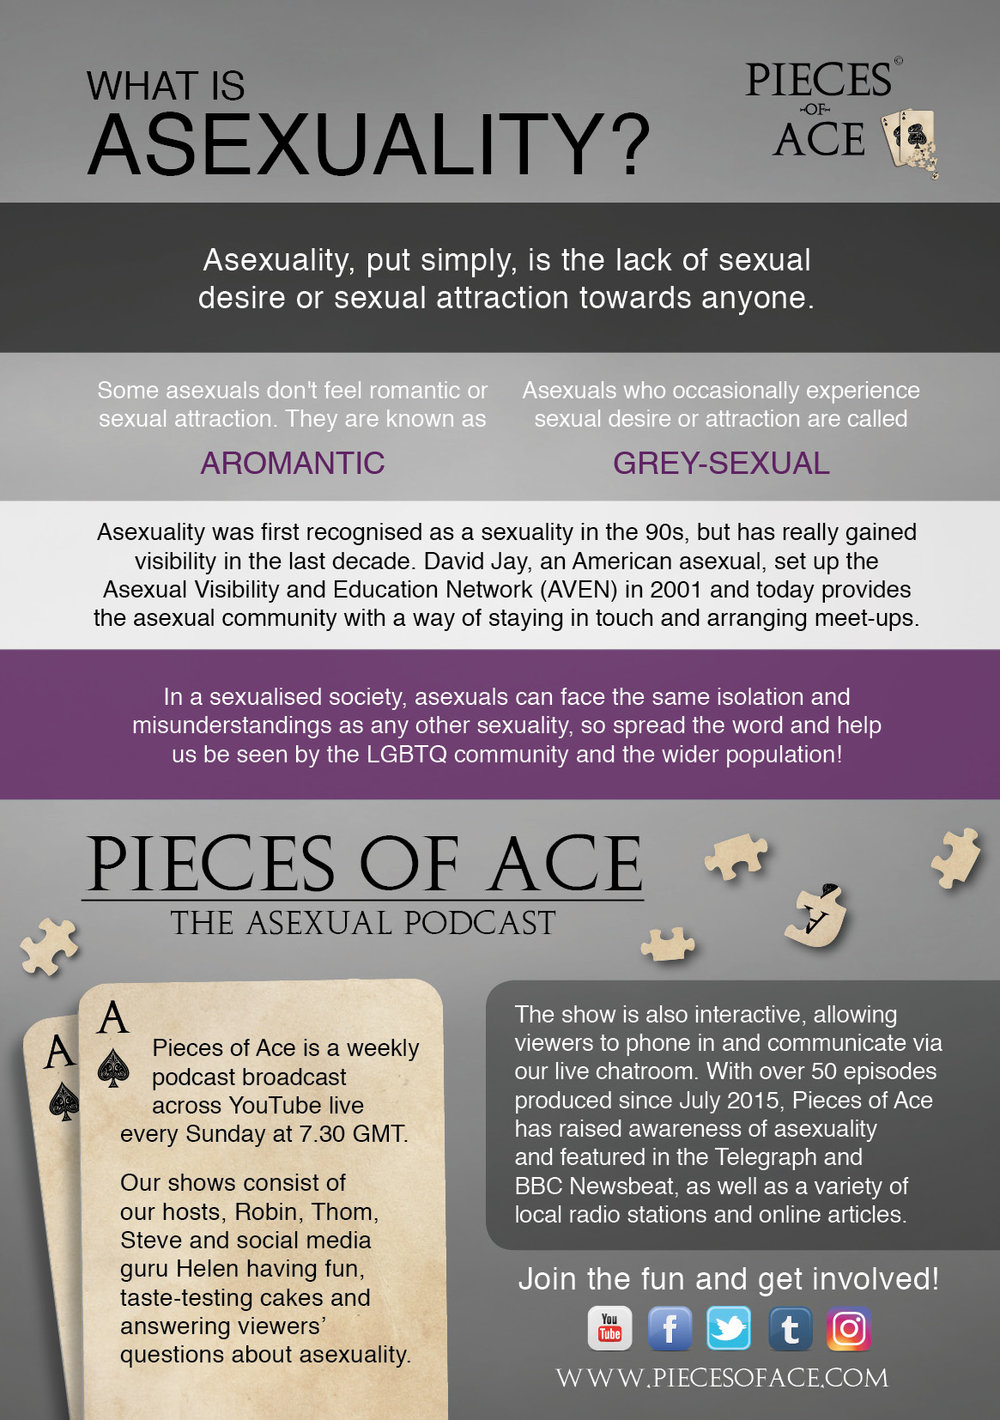 asexuality flyer.jpg